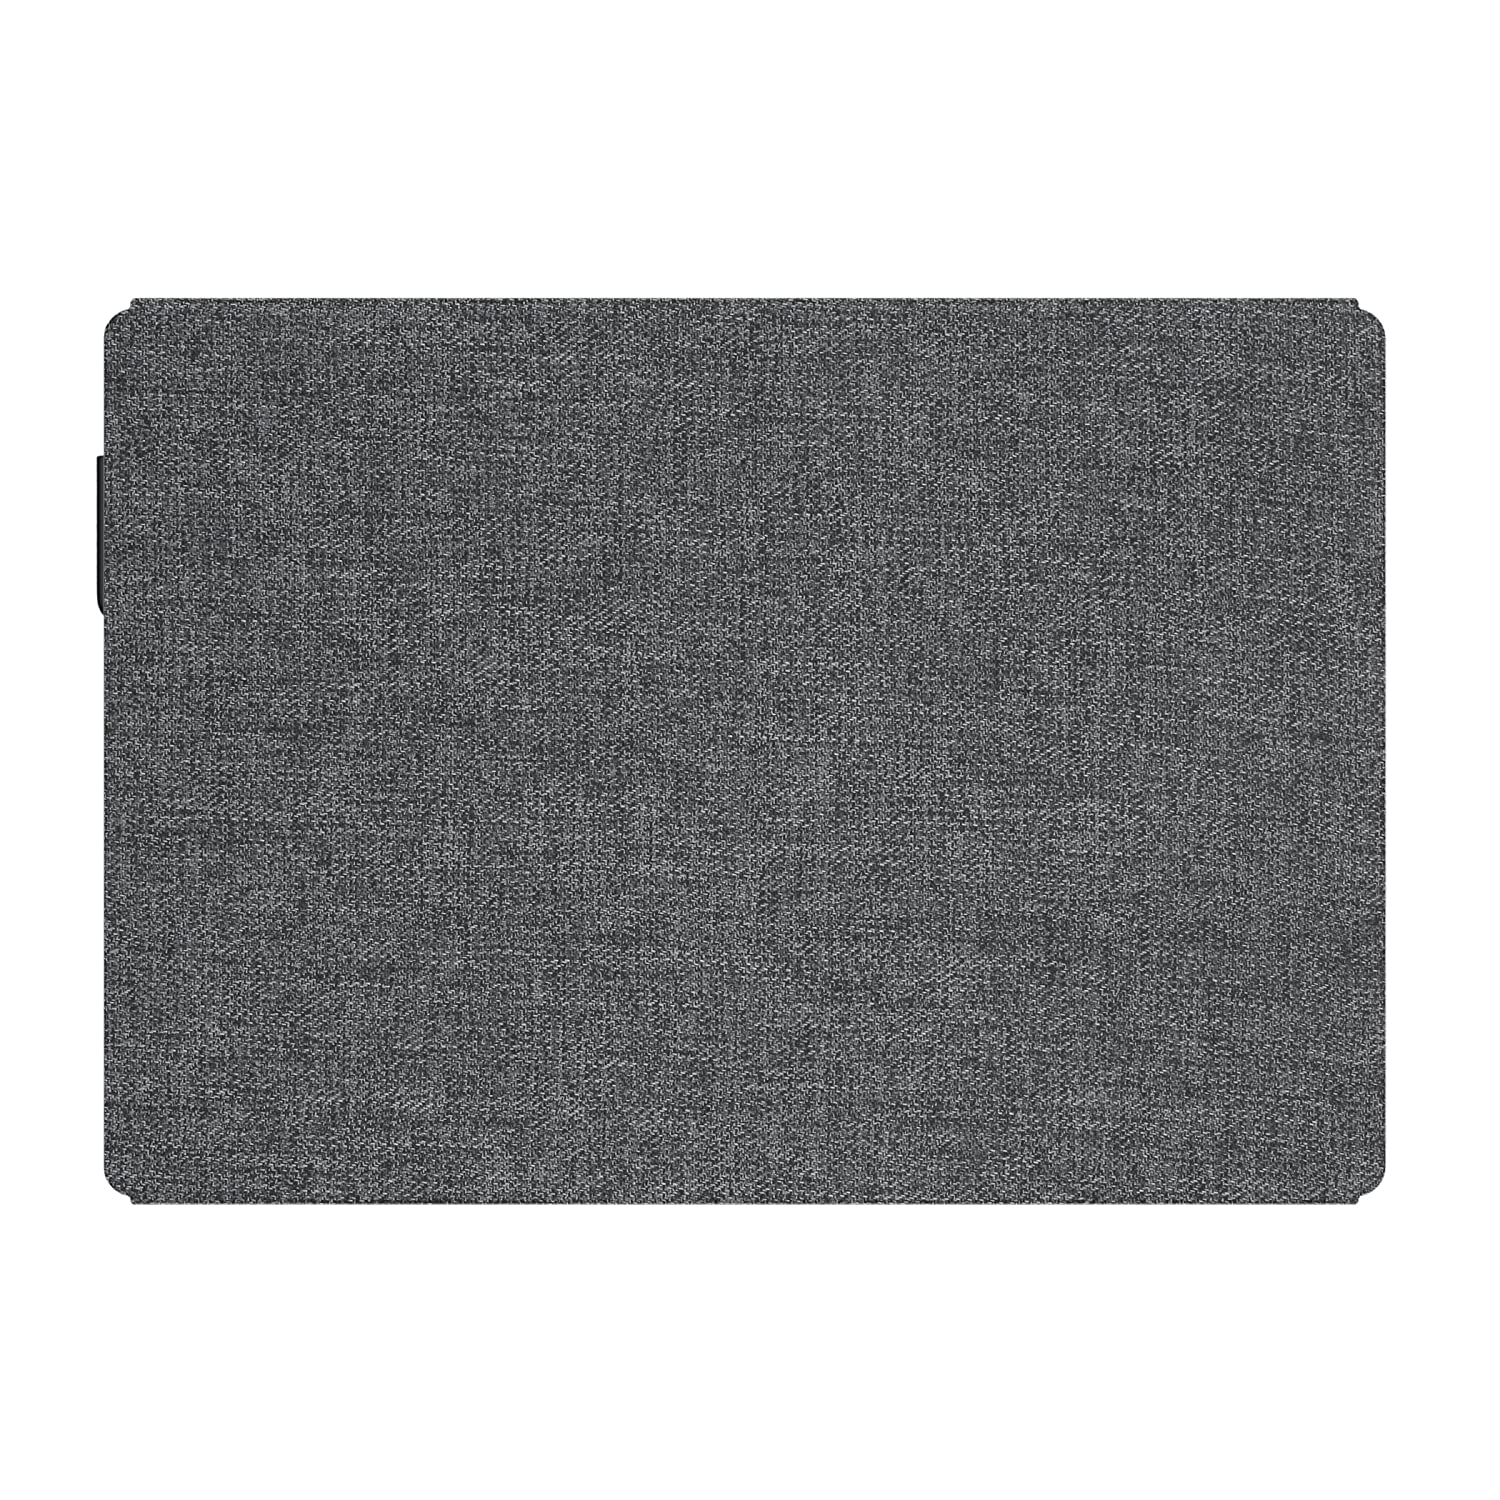 Amazon.com  Incipio Esquire Series Folio Case fits both Microsoft Surface  Pro (2017) and Surface Pro 4 - Gray  Computers   Accessories 71afbb8d39f